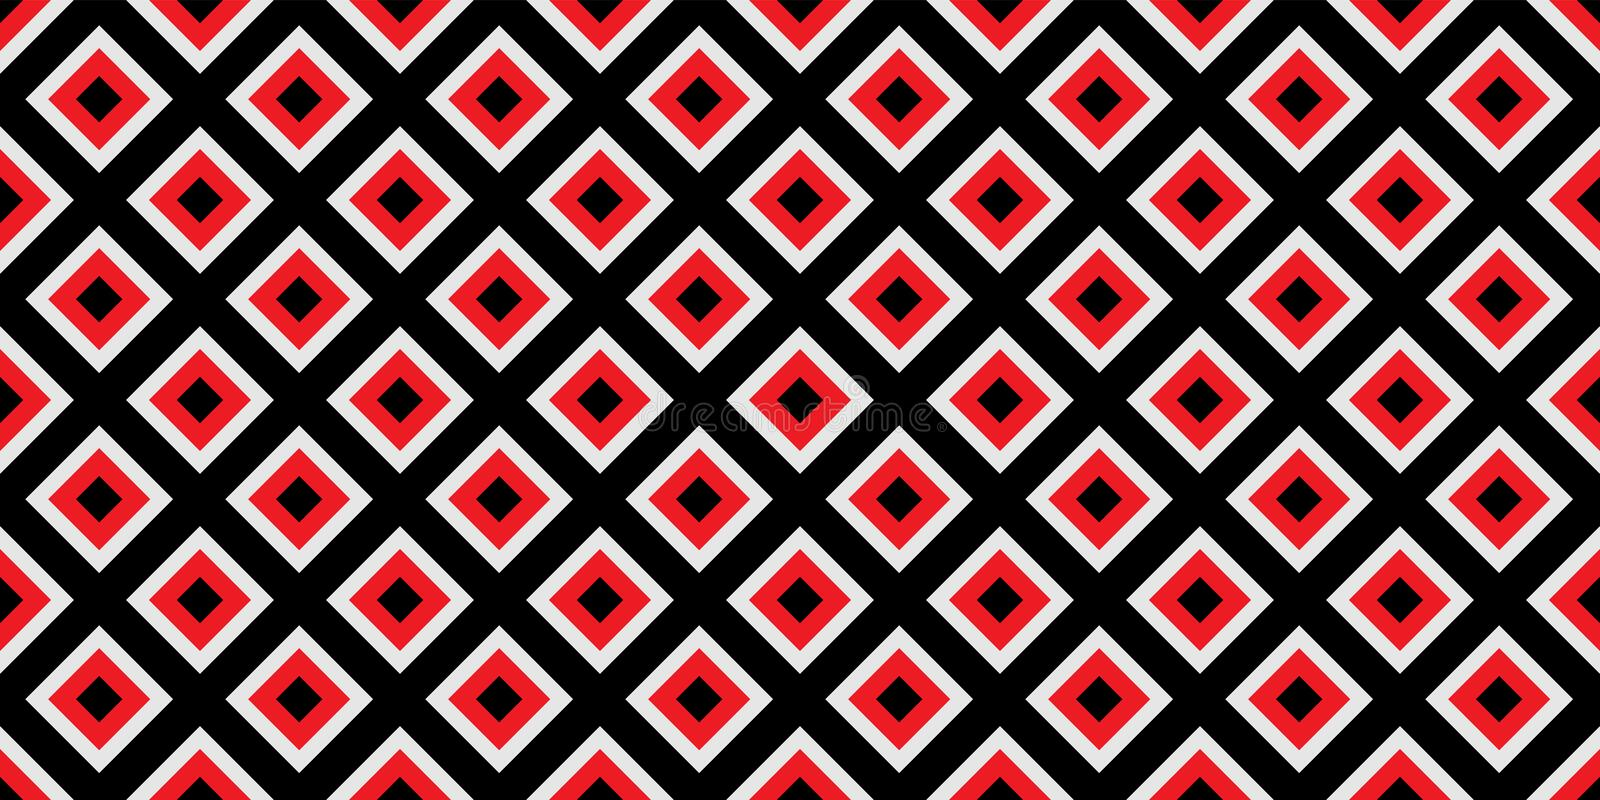 Seamless geometric pattern. Red and black colors are Modern casual colors royalty free illustration